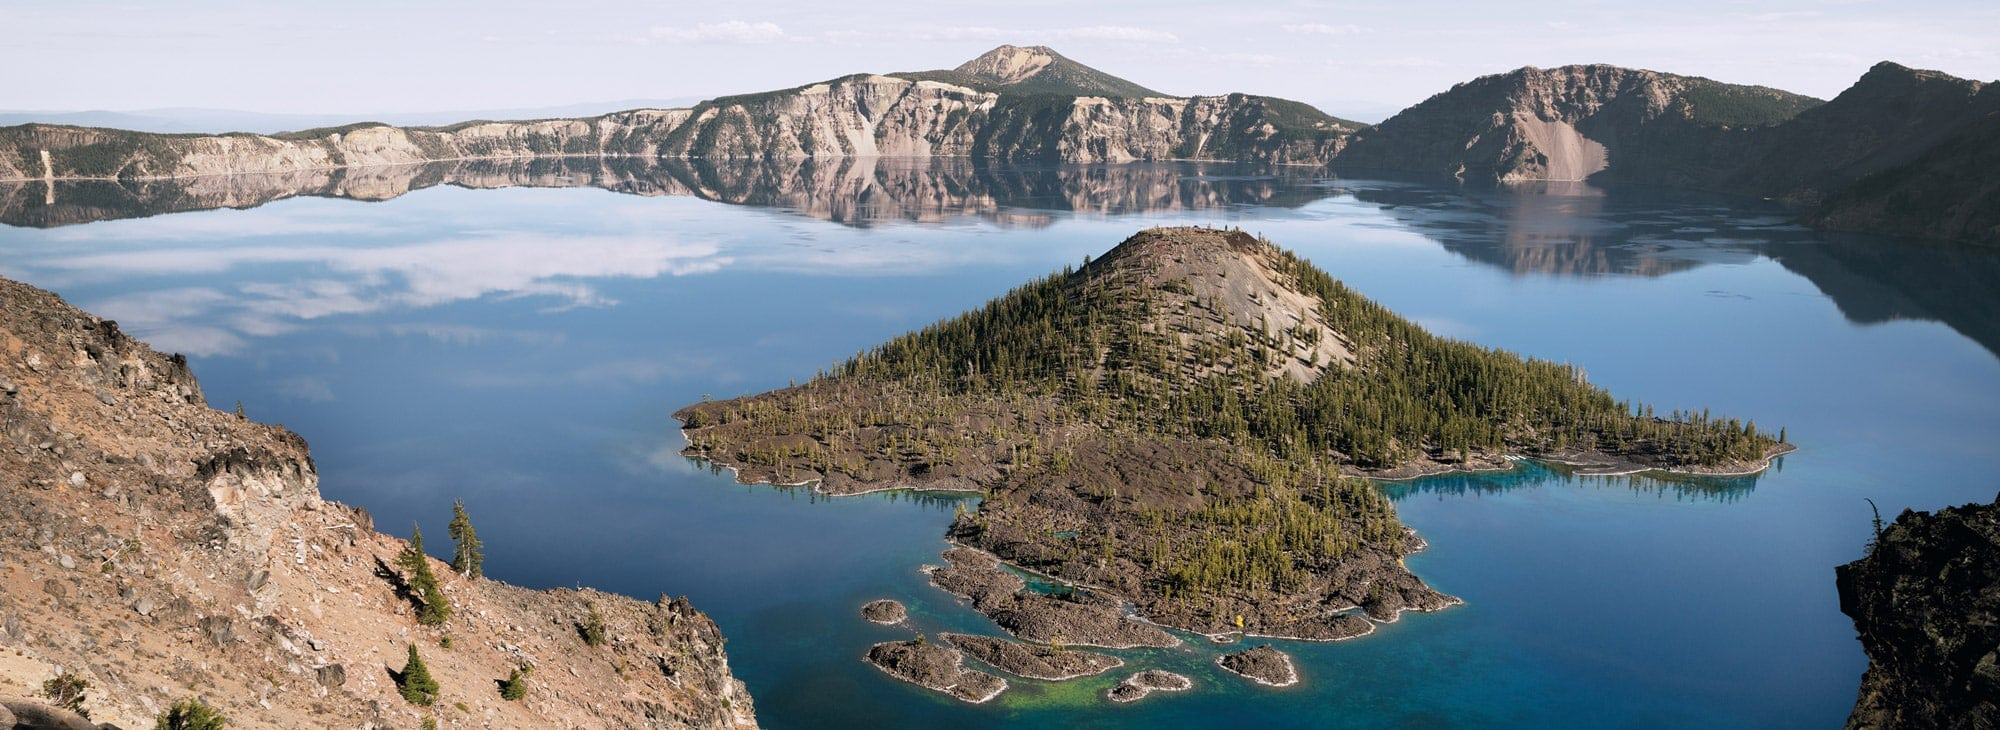 Volcanic Legacy Scenic Byway - Travel Oregon